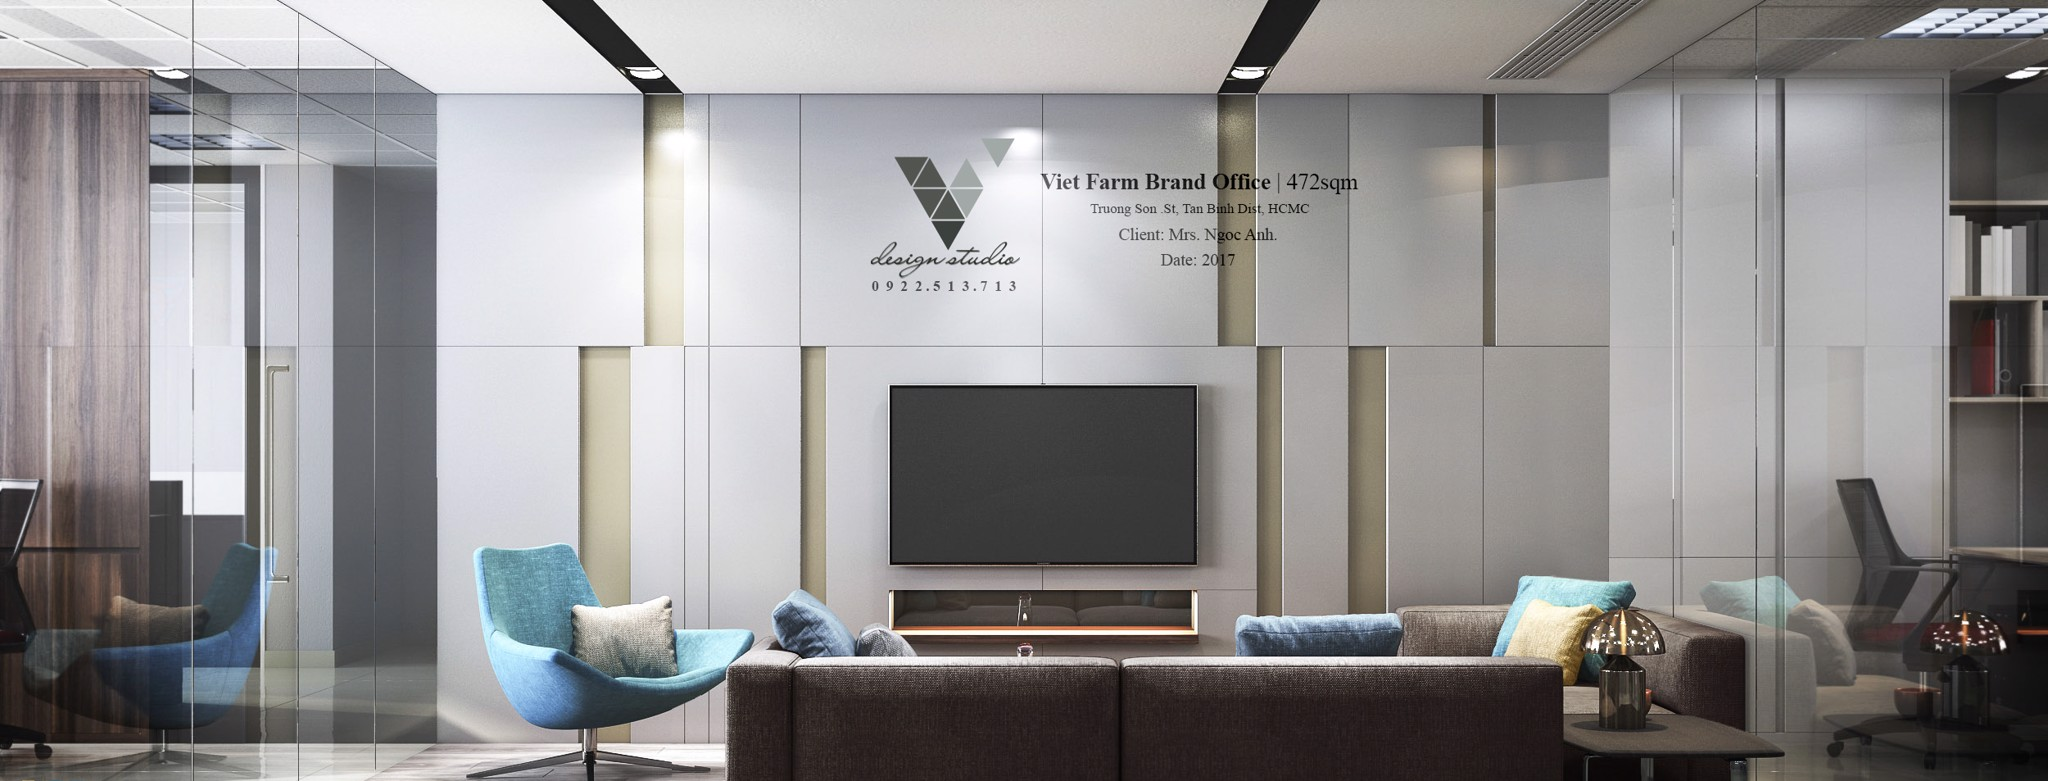 VIETFARM BRAND OFFICE